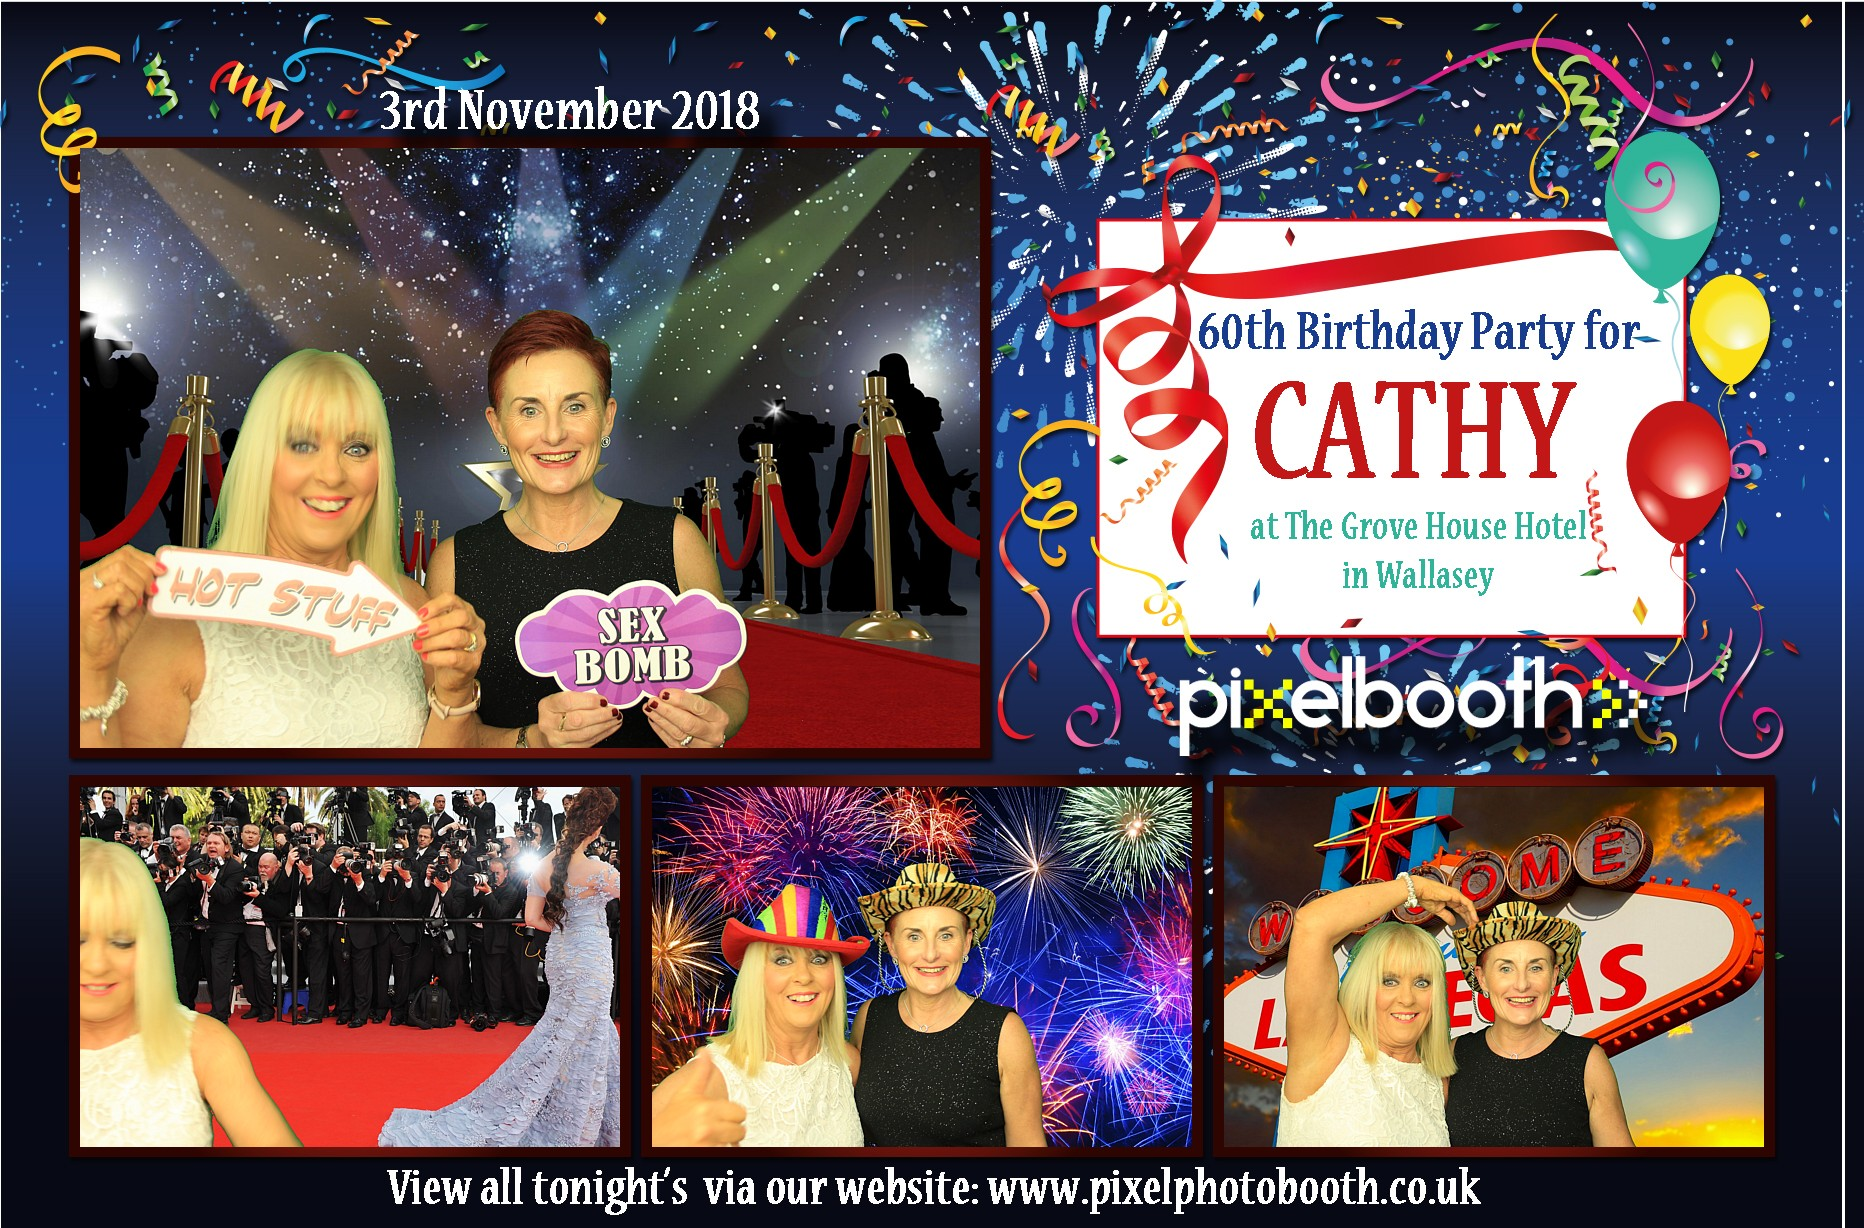 3rd Nov 2018: 60th for Cathy at Grove House Hotel, Wallasey